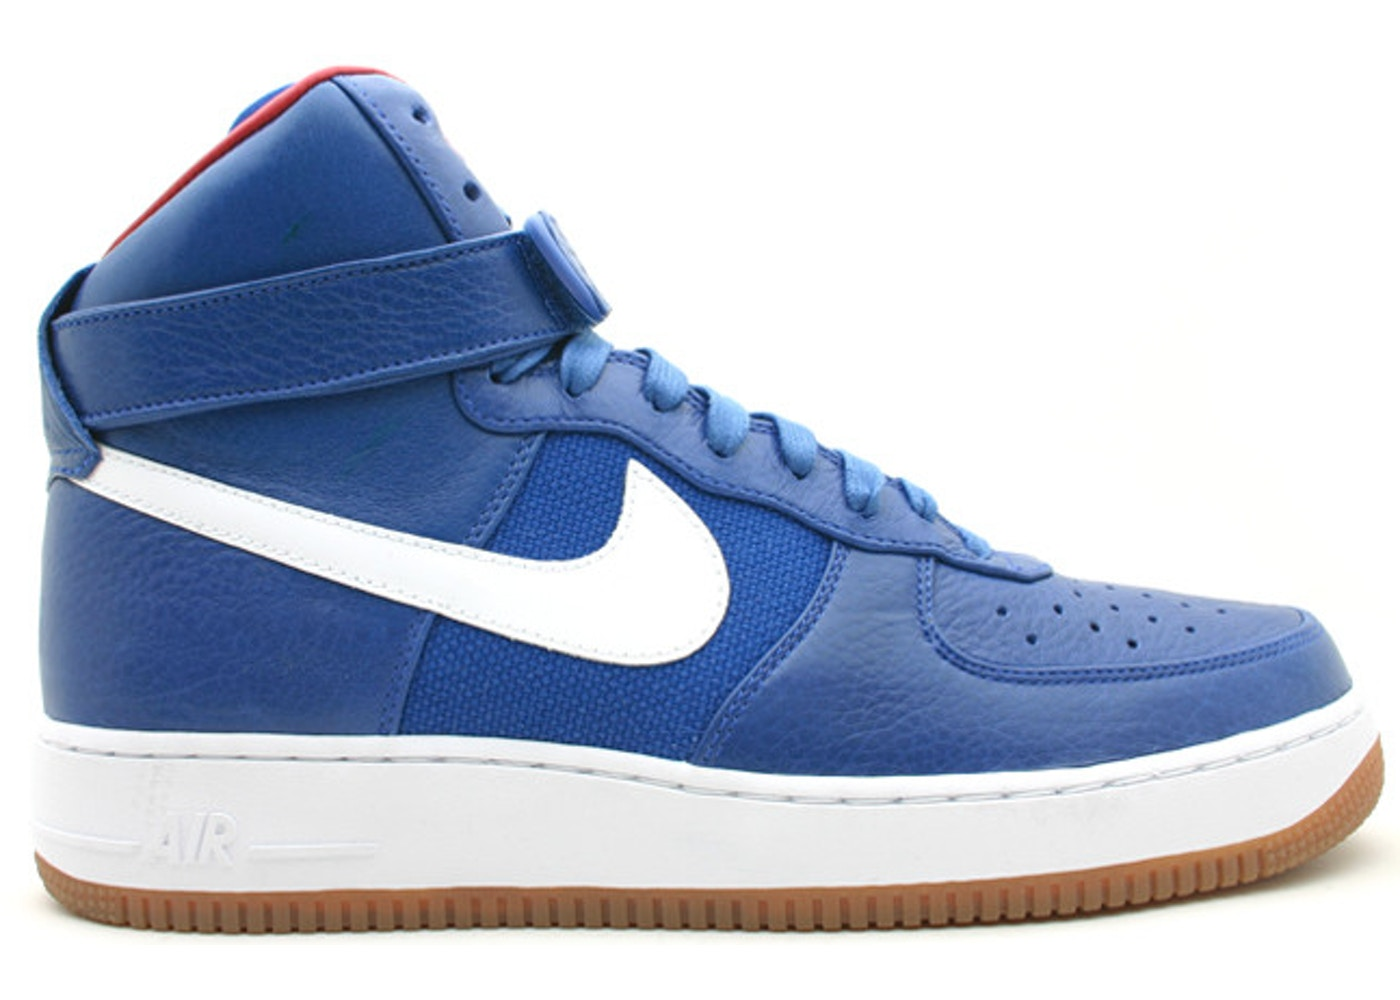 wholesale dealer 3abc9 64083 Air Force 1 High Bobbito Puerto Rico Blue